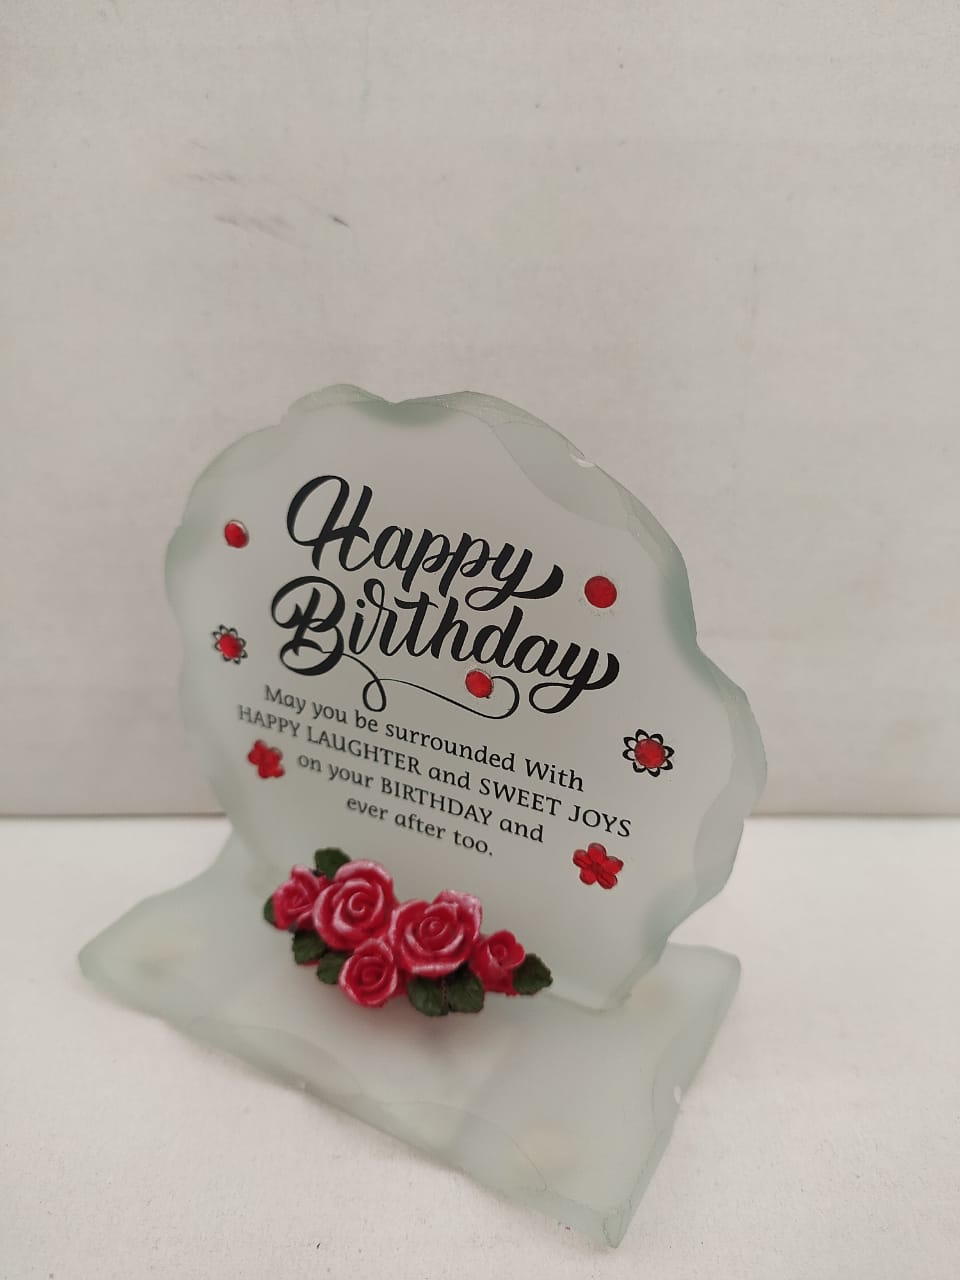 Happy Birthday Greeting Glass with Matt finish Greeting Showpieces (DLM129)